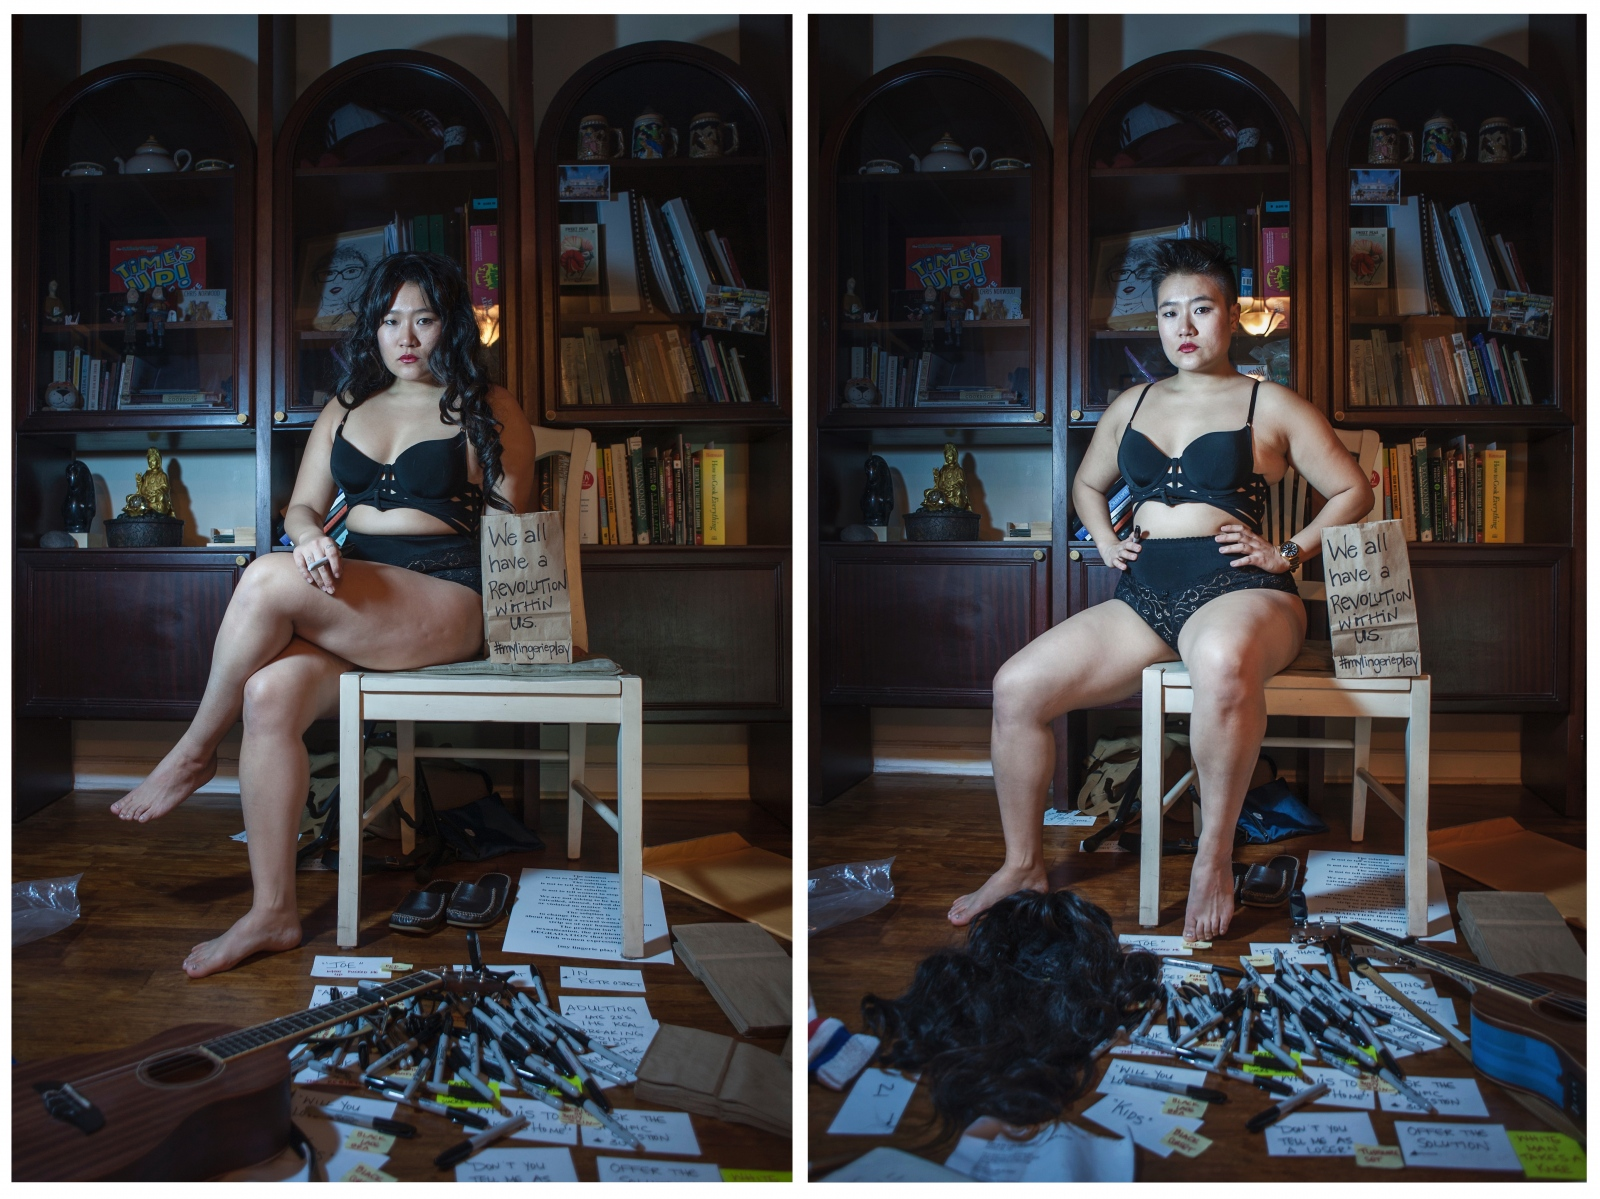 """Queer artist, performer, and theatre director Diana Oh in her apartment in Elmhurst, NY. Oh is a Korean American artist known for """"My Lingerie Play,"""" a performance art piece that began in 2014 which involves standing in public spaces atop soapboxes in her own lingerie holding brown paper bags with words that have been directed at her body. Her work is about accepting, rather than demonizing, female sexuality. """"I'm thinking about the overperformance of gender. I'm thinking about personal revolution."""" Oh is pictured with and without her wig, which she believes changes public perception of her sexuality. She is surrounded by paper bags and messages used for her performance, structured around events from her life."""